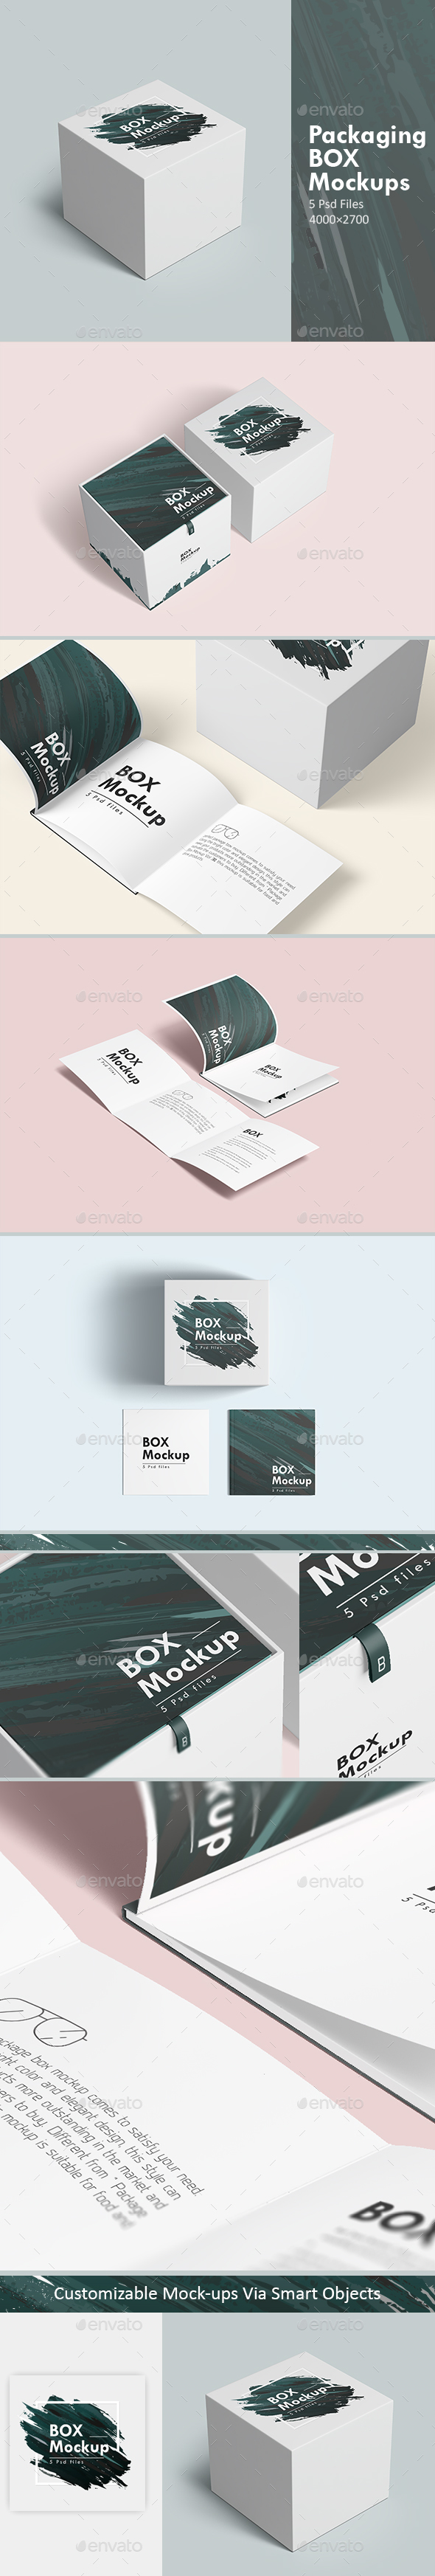 Packaging Box Mockups - Miscellaneous Packaging